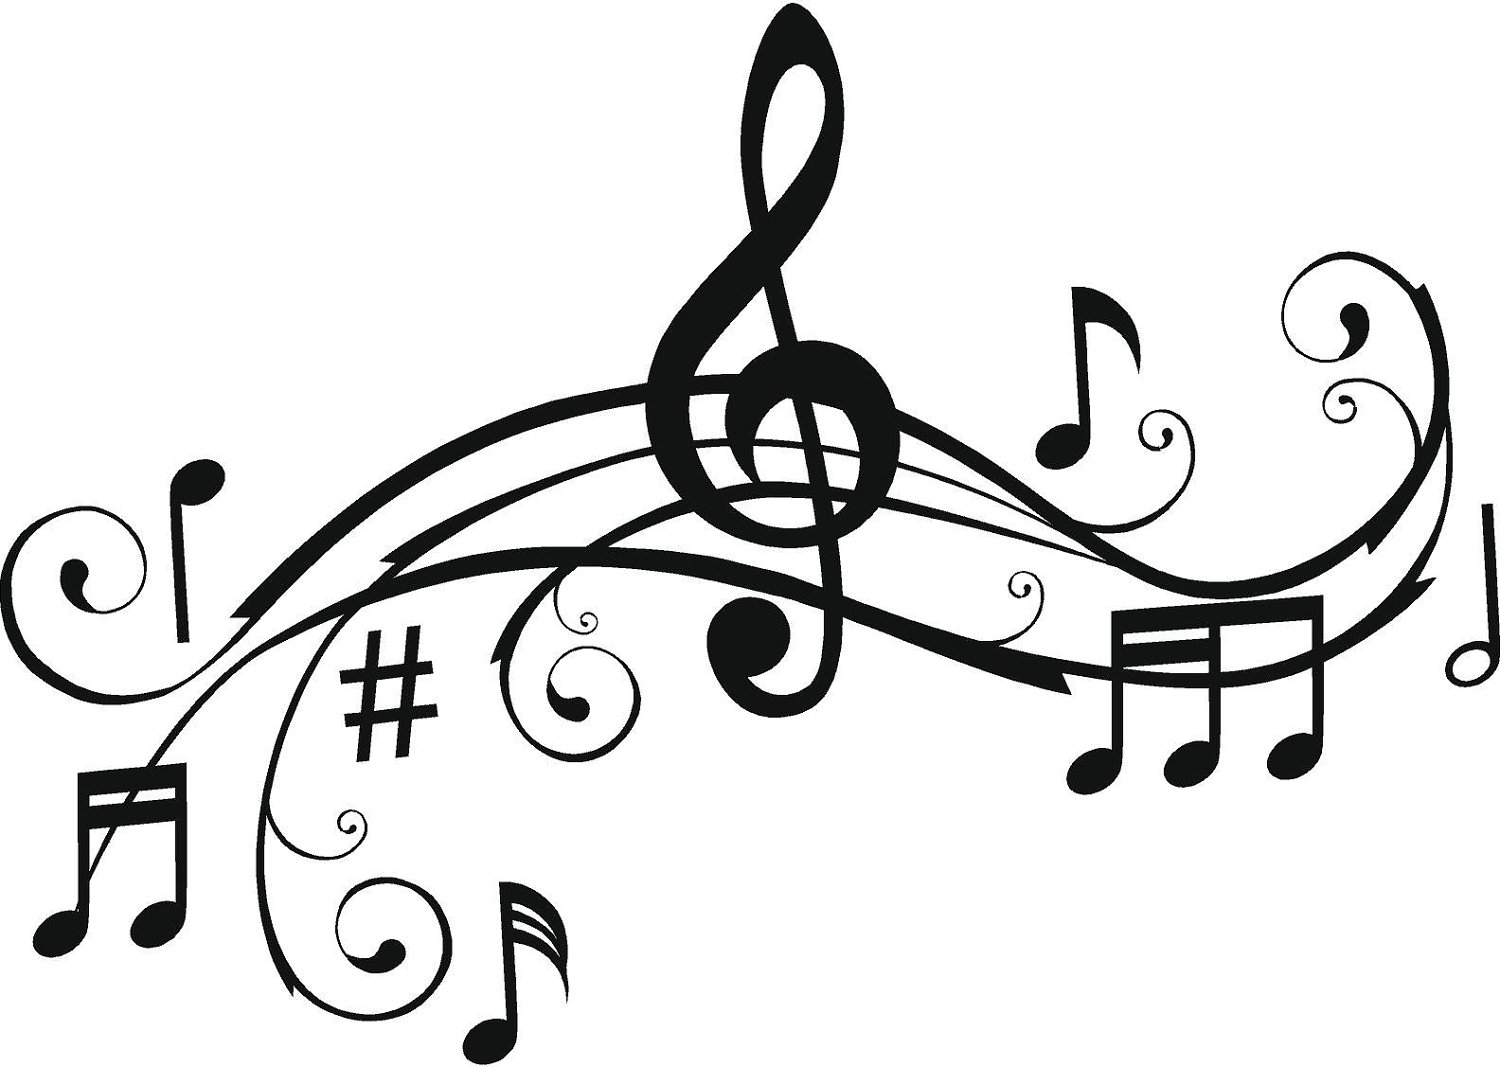 Music note clip art ayomove 2